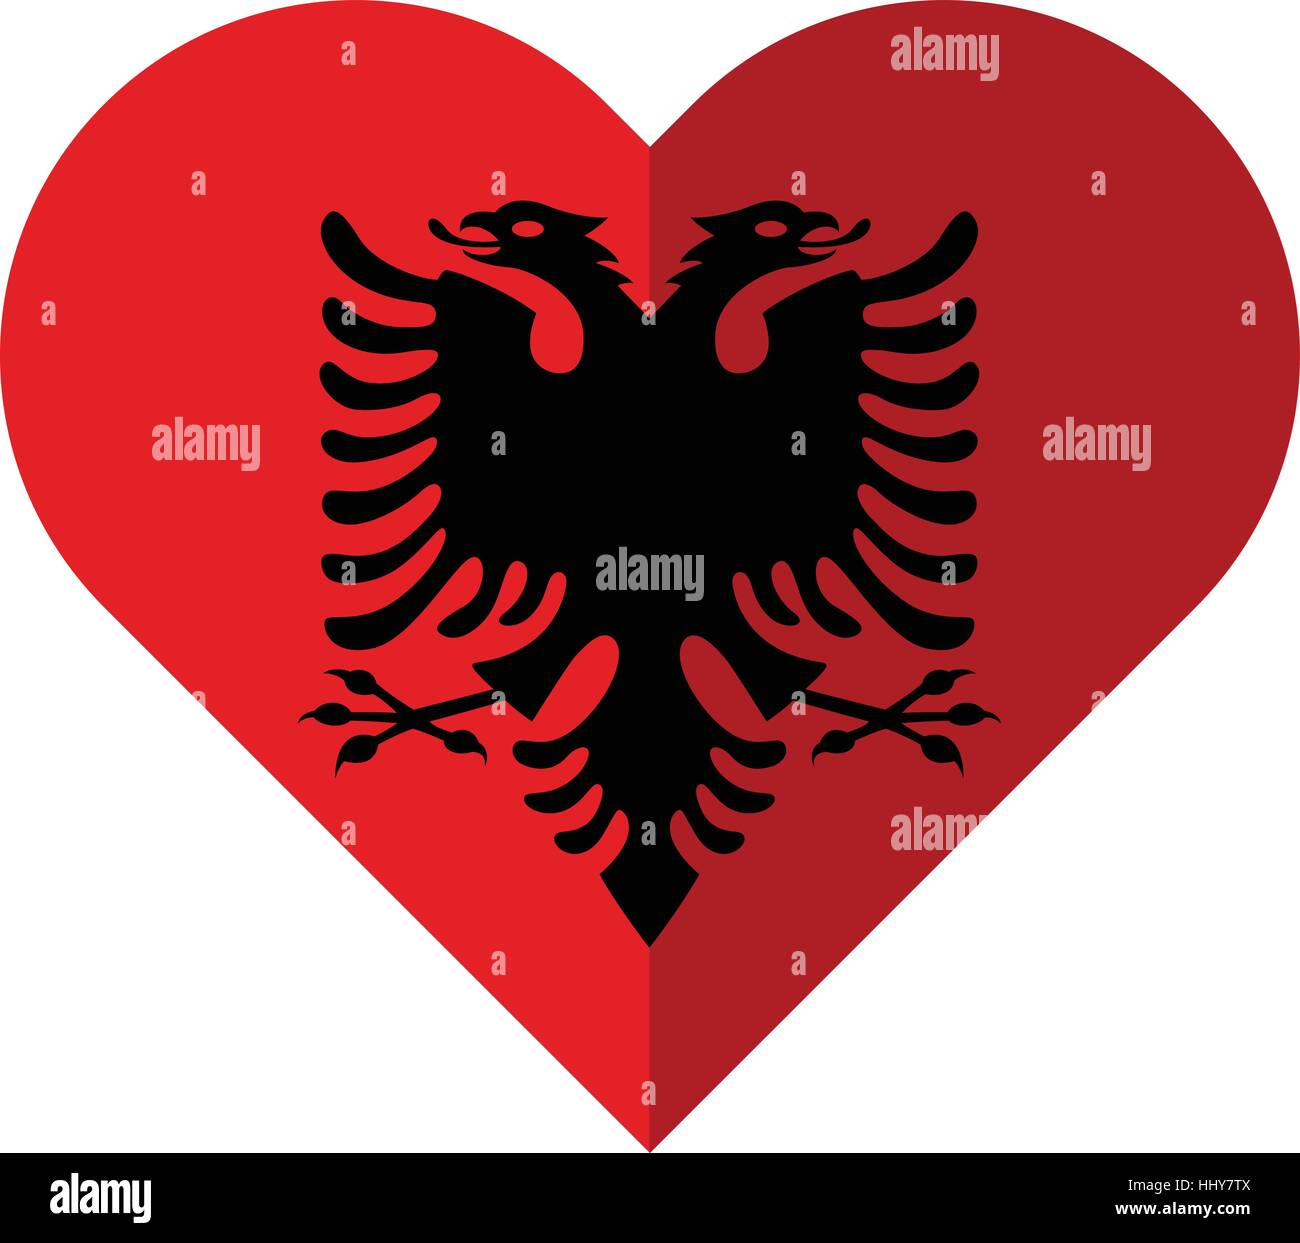 Vector image of the Albania flat heart flag - Stock Image